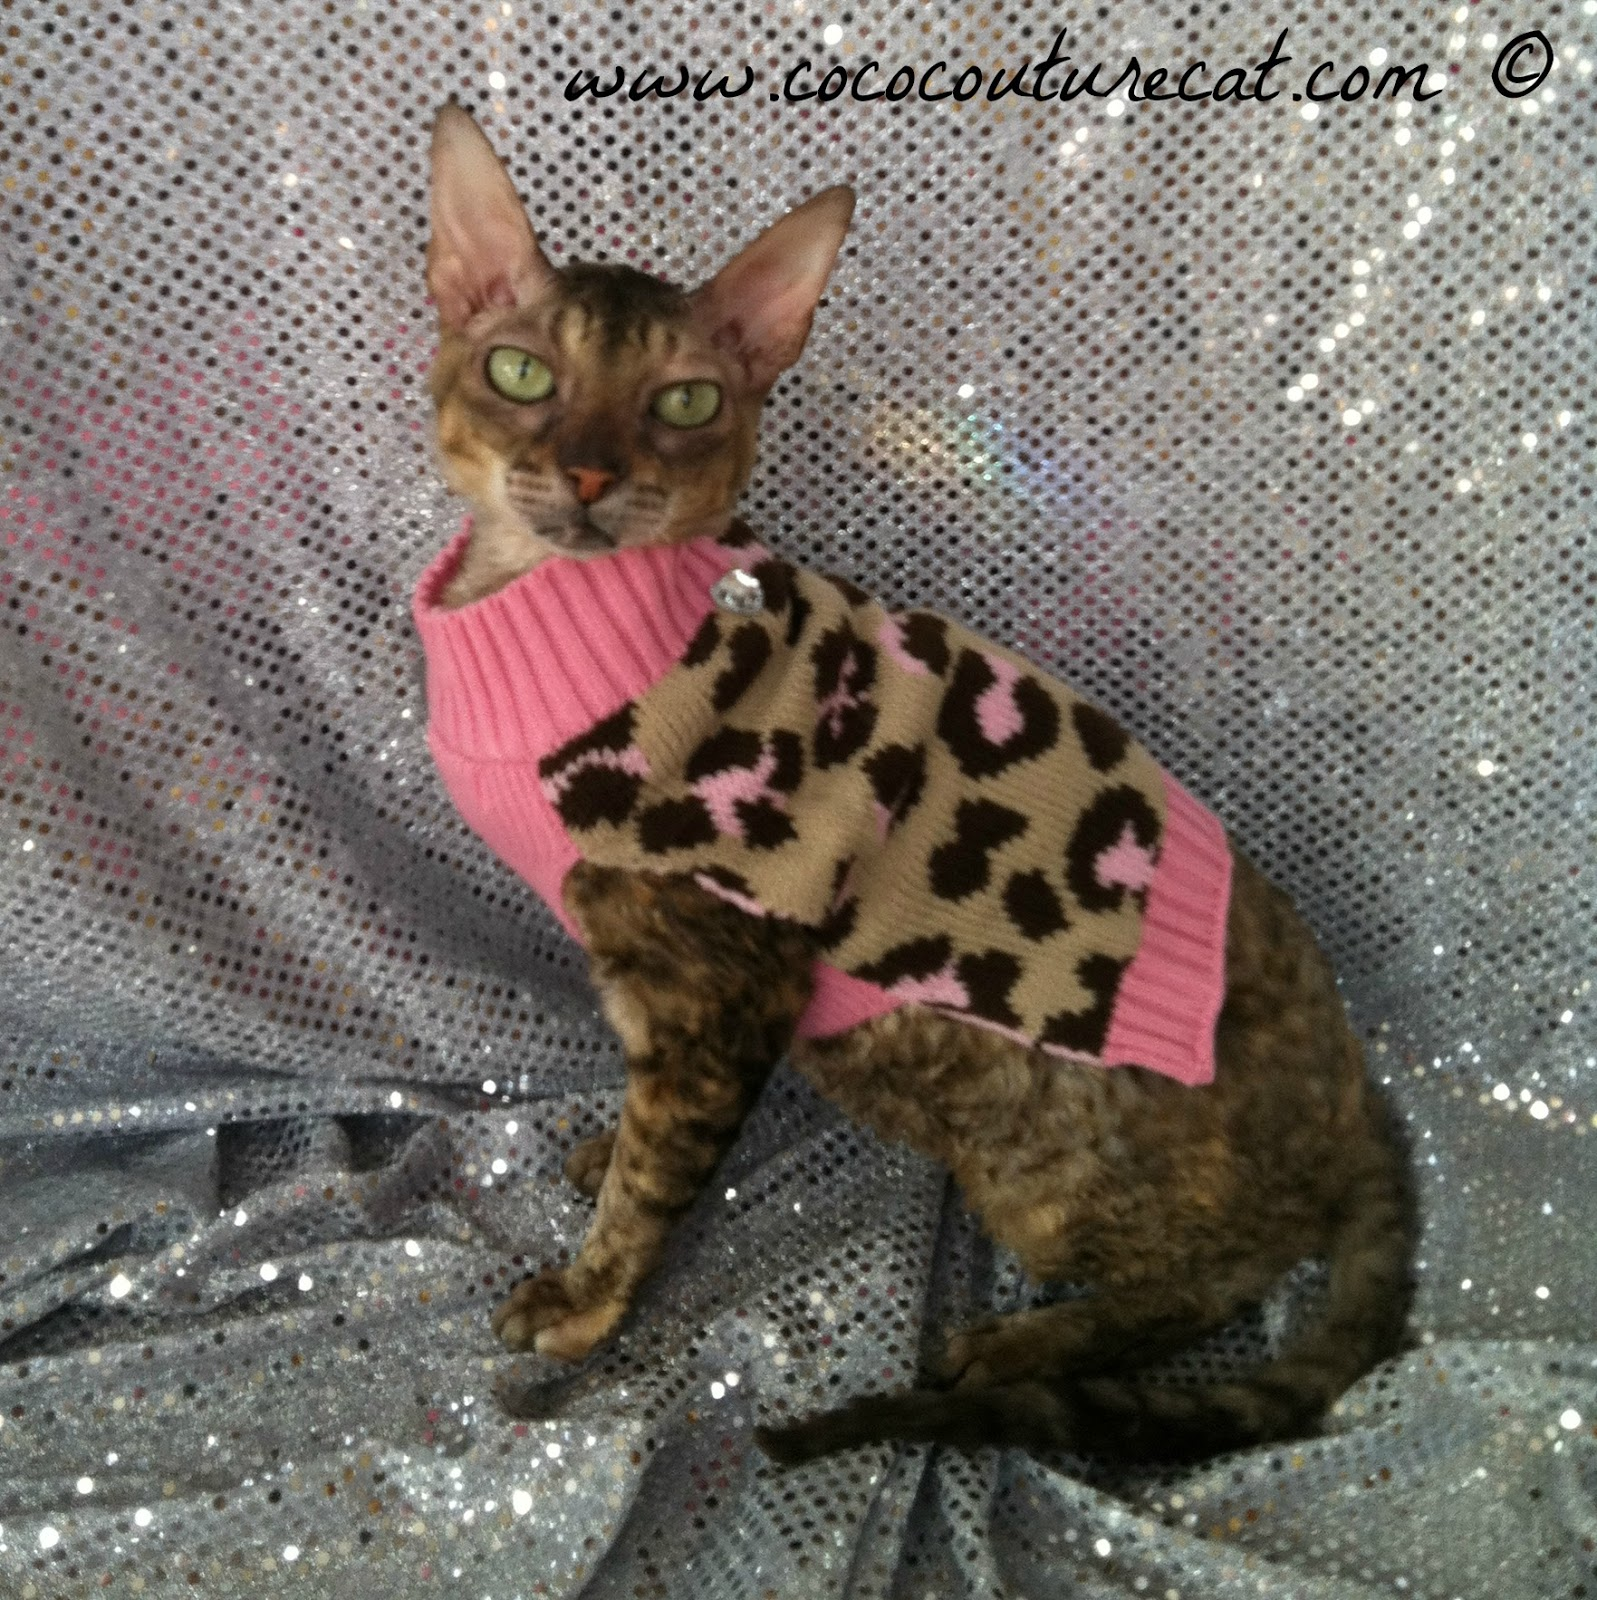 Dress up your pet day -  National Dress Up Your Pet Day Coco Style